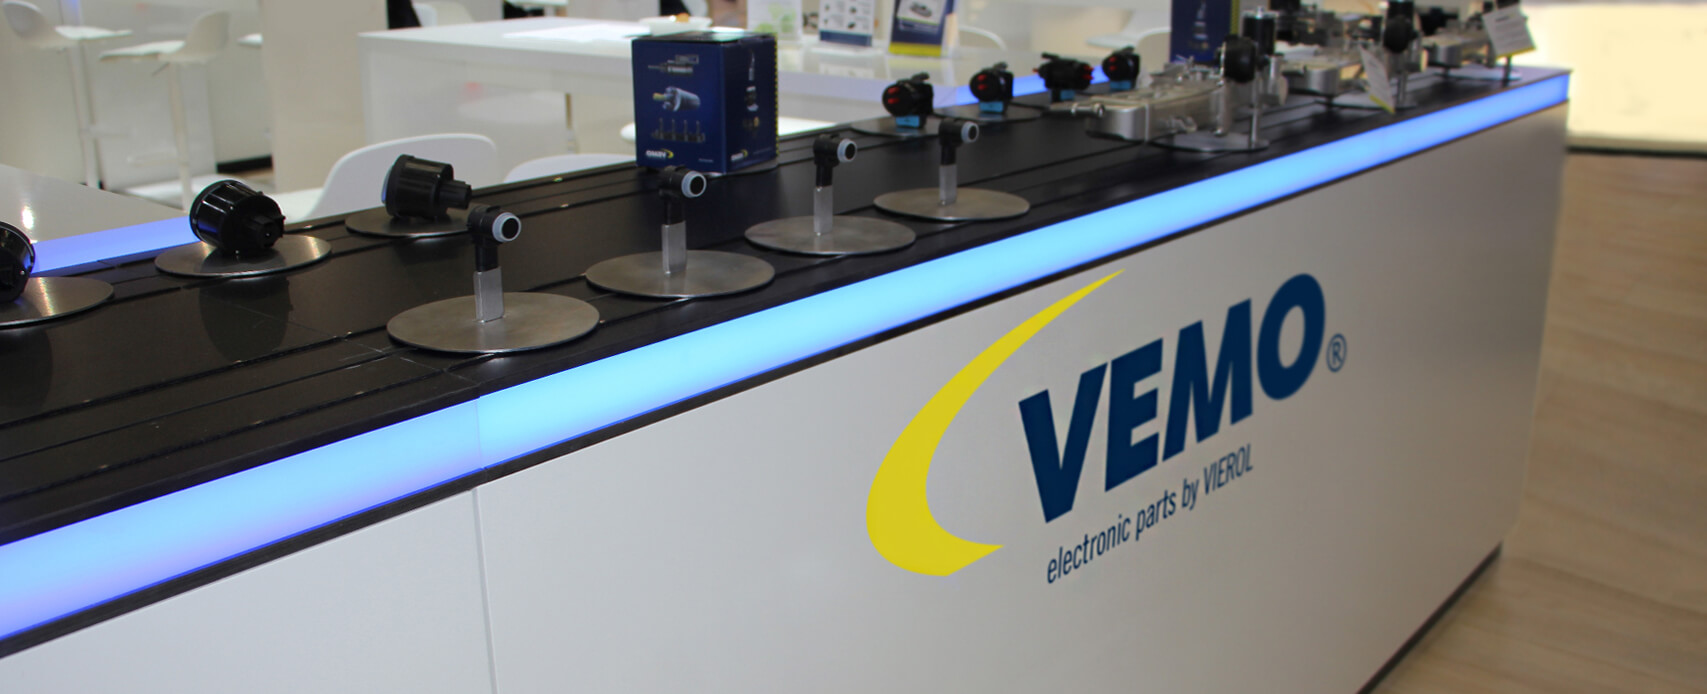 The Quality Brand Vemo Electric Parts By Vierol Mb Wiring Harness Repair Kit